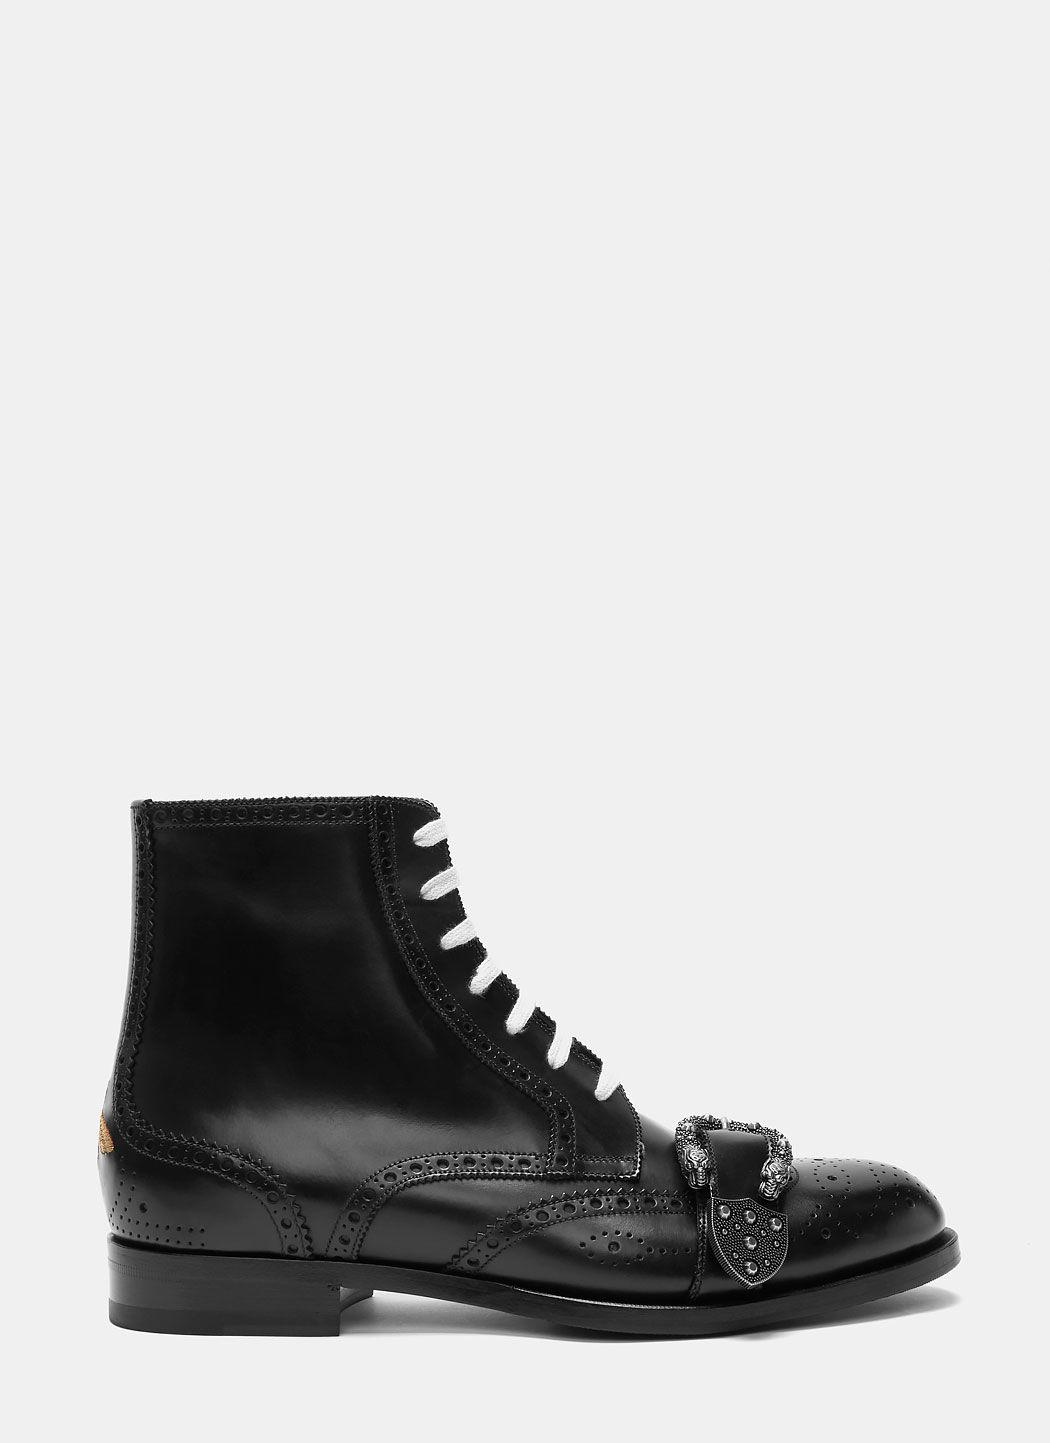 Gucci Black Queercore Boots For Men Lyst